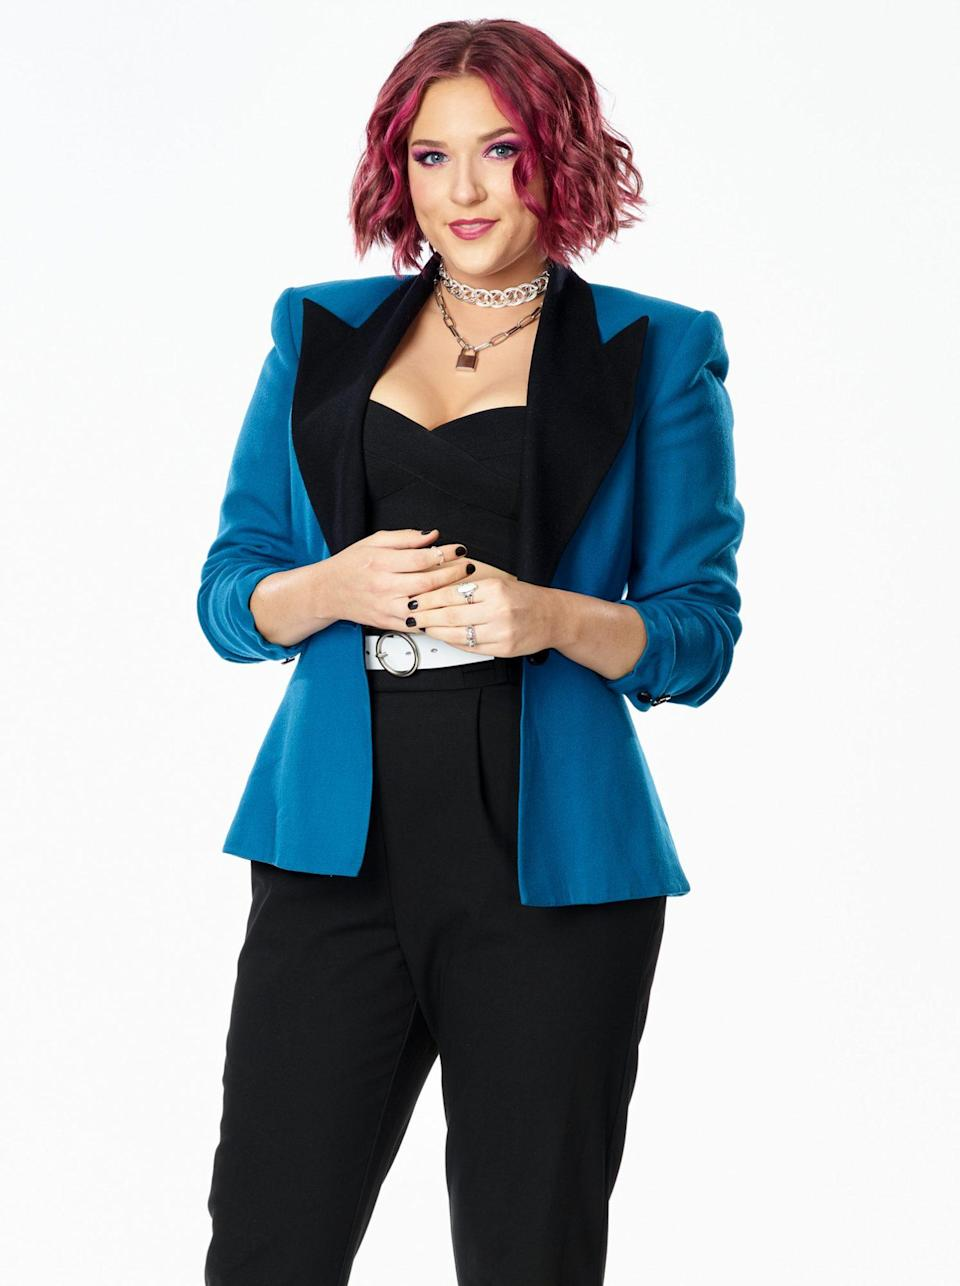 """<p><strong>Age:</strong> 22</p> <p><strong>Hometown:</strong> San Diego, California</p> <p><strong>Resident:</strong> New York, New York</p> <p>Joan fell in love with singing and songwriting when she was 5 years old. She grew up performing in local theater productions and occasionally singing in her brother's band. She and her brother would also write and produce original music, which allowed them to separate themselves from their difficult home life and turn their struggles into art. At 19, Joan impulsively booked a week-long trip to New York and never left. She landed a part in the production of <em>Kinky Boots</em> and spent 10 months traveling the country on a Broadway national tour. Joan used her time on the road to learn and grow as a performer and is ready to bring her talents to <em>The Voice</em>.</p> <p>""""I am so excited to be joining Team Nick on <em>The Voice</em>!"""" she says. """"This has been such a dream come true, and I feel so lucky to have the opportunity to sing for these incredible coaches and everyone watching at home.""""</p>"""